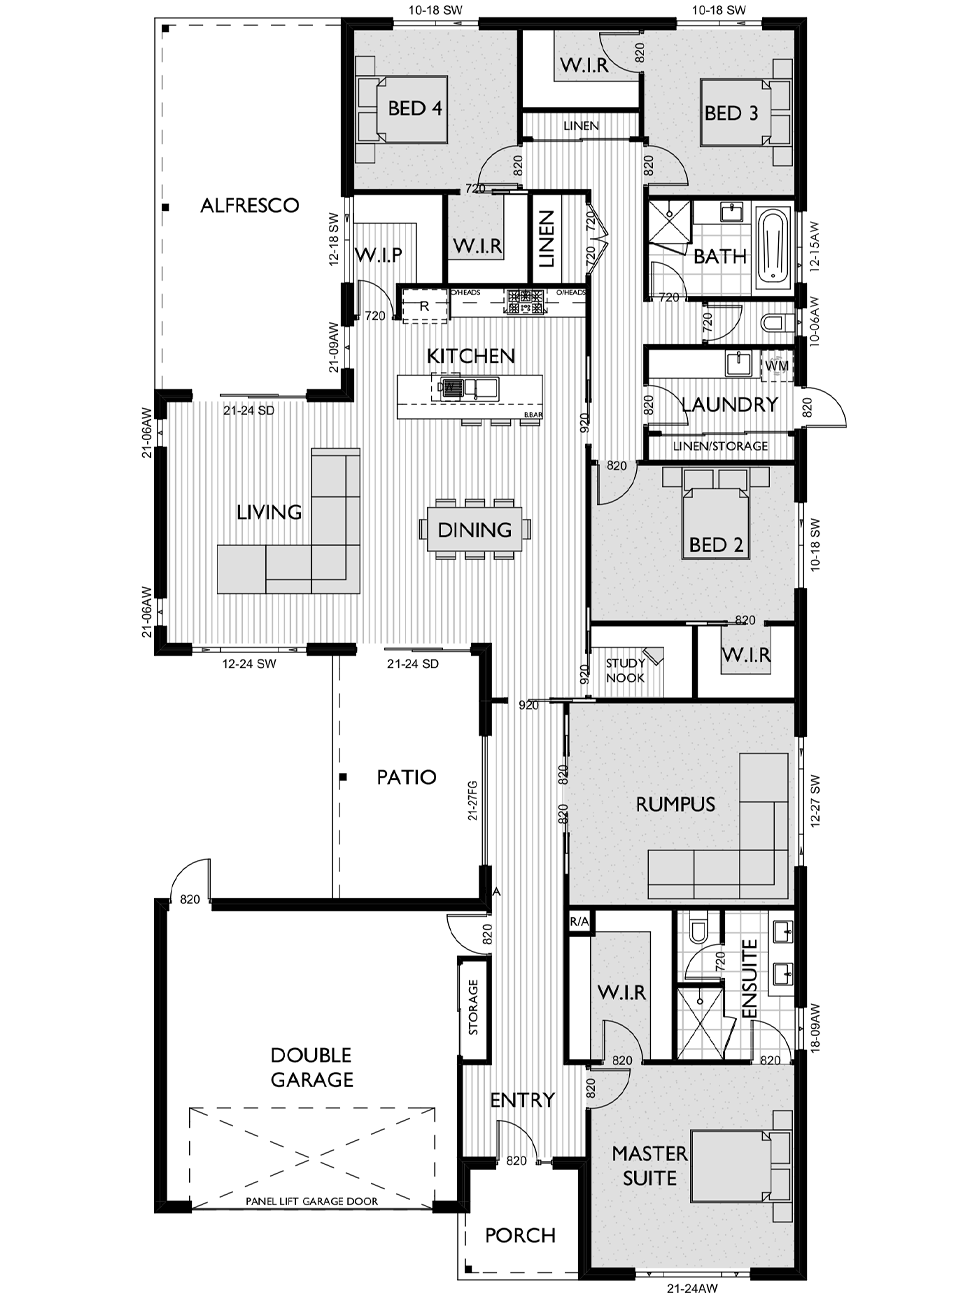 Floor Plan for Virtue Homes Stratton 35 family home